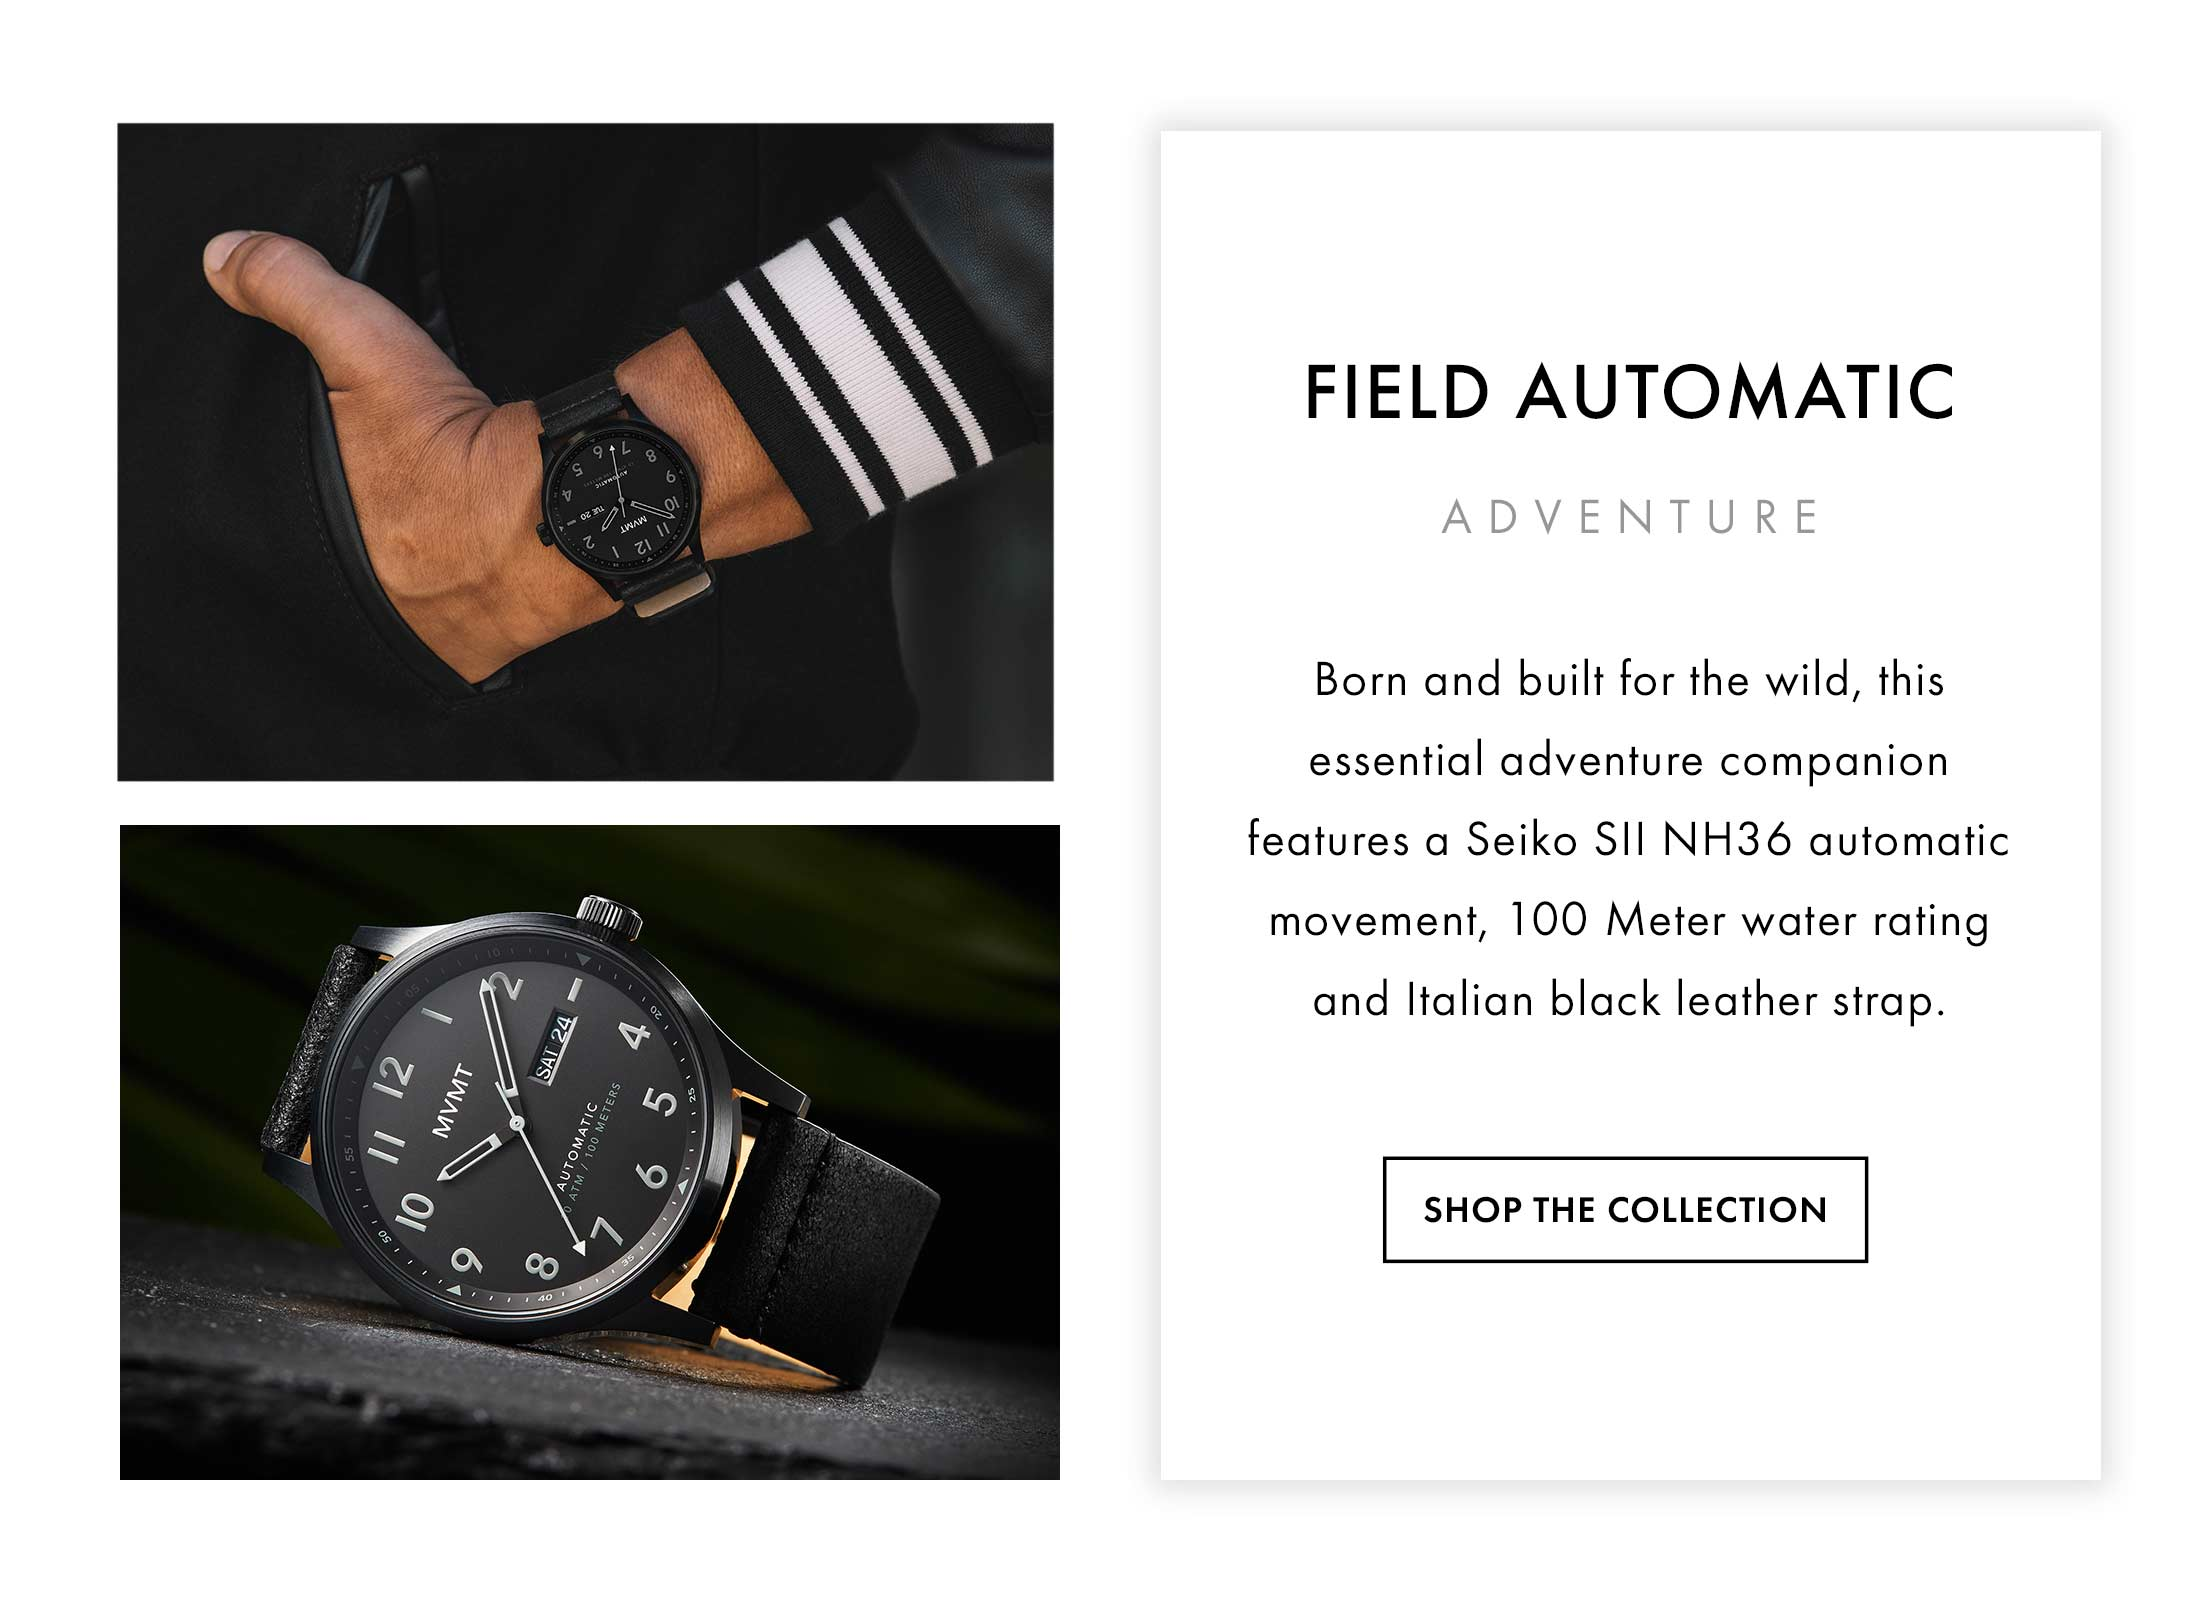 Field Automatic Adventure Born and built for the wild, this essential adventure companion features a Seiko SII NH36 automatic movement, 100 Meter water rating and black Italian leather strap. Shop the Collection